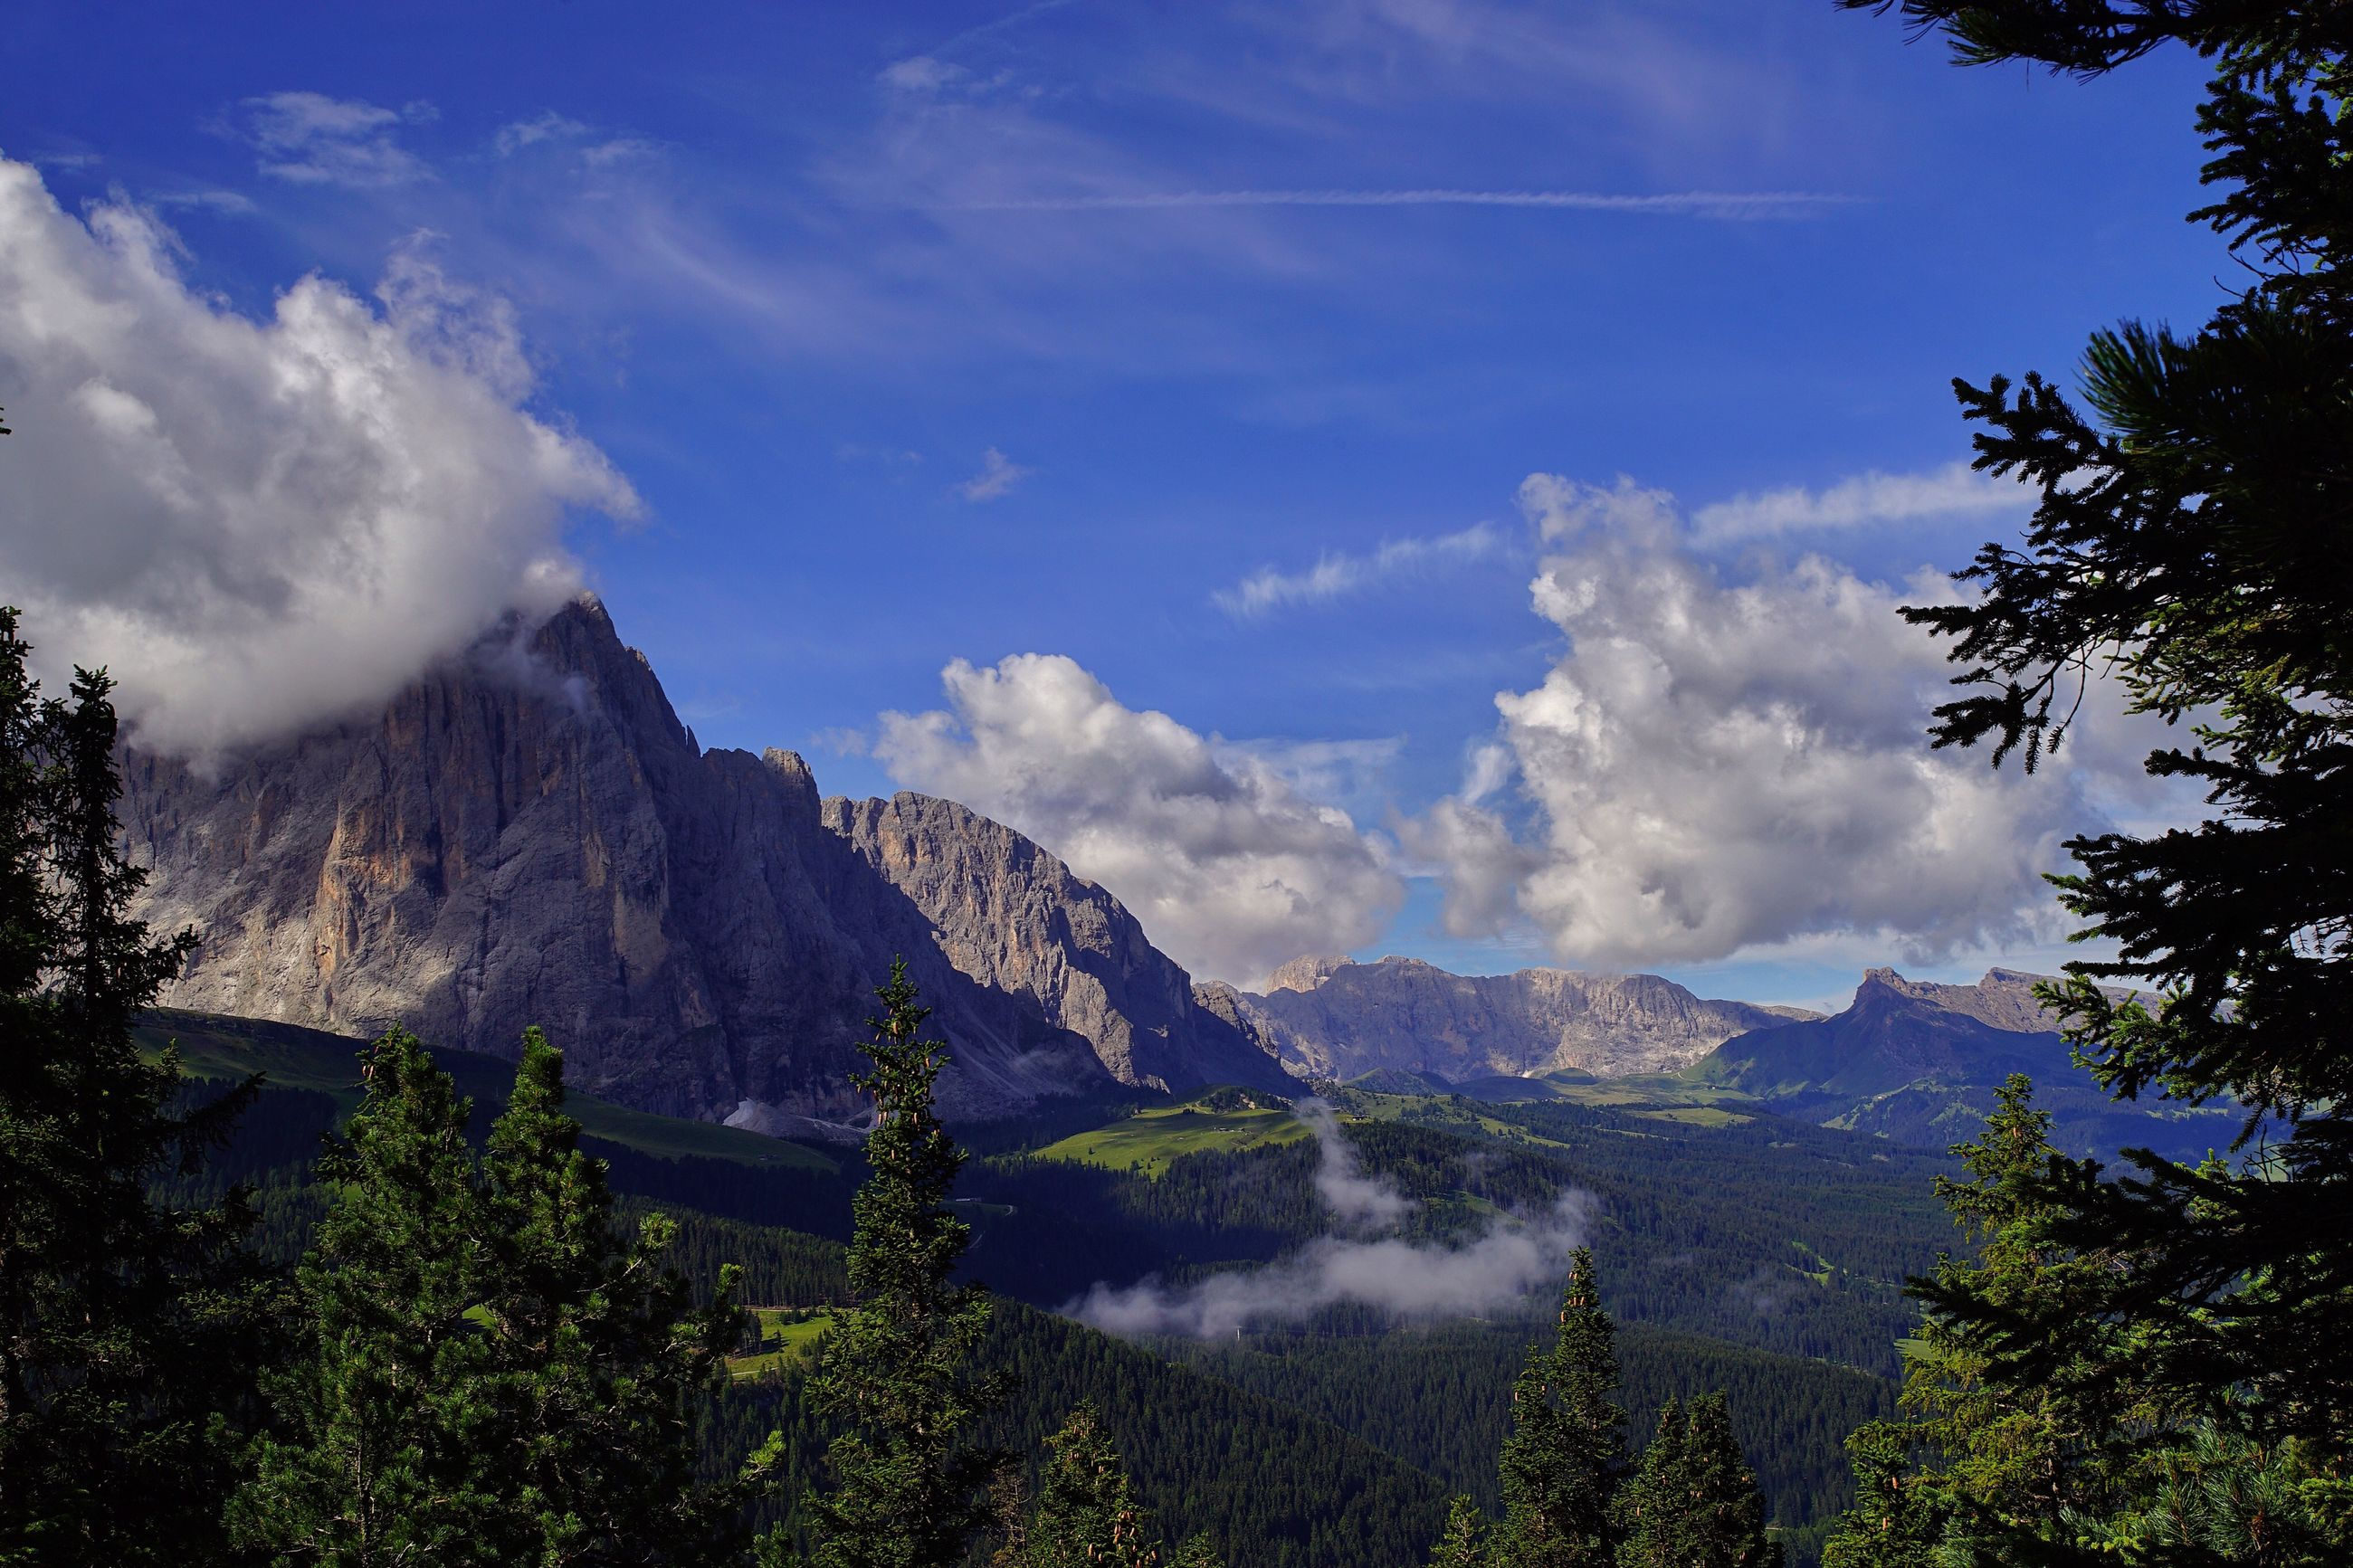 mountain, sky, nature, no people, landscape, beauty in nature, scenery, range, blue sky, tree, outdoors, day